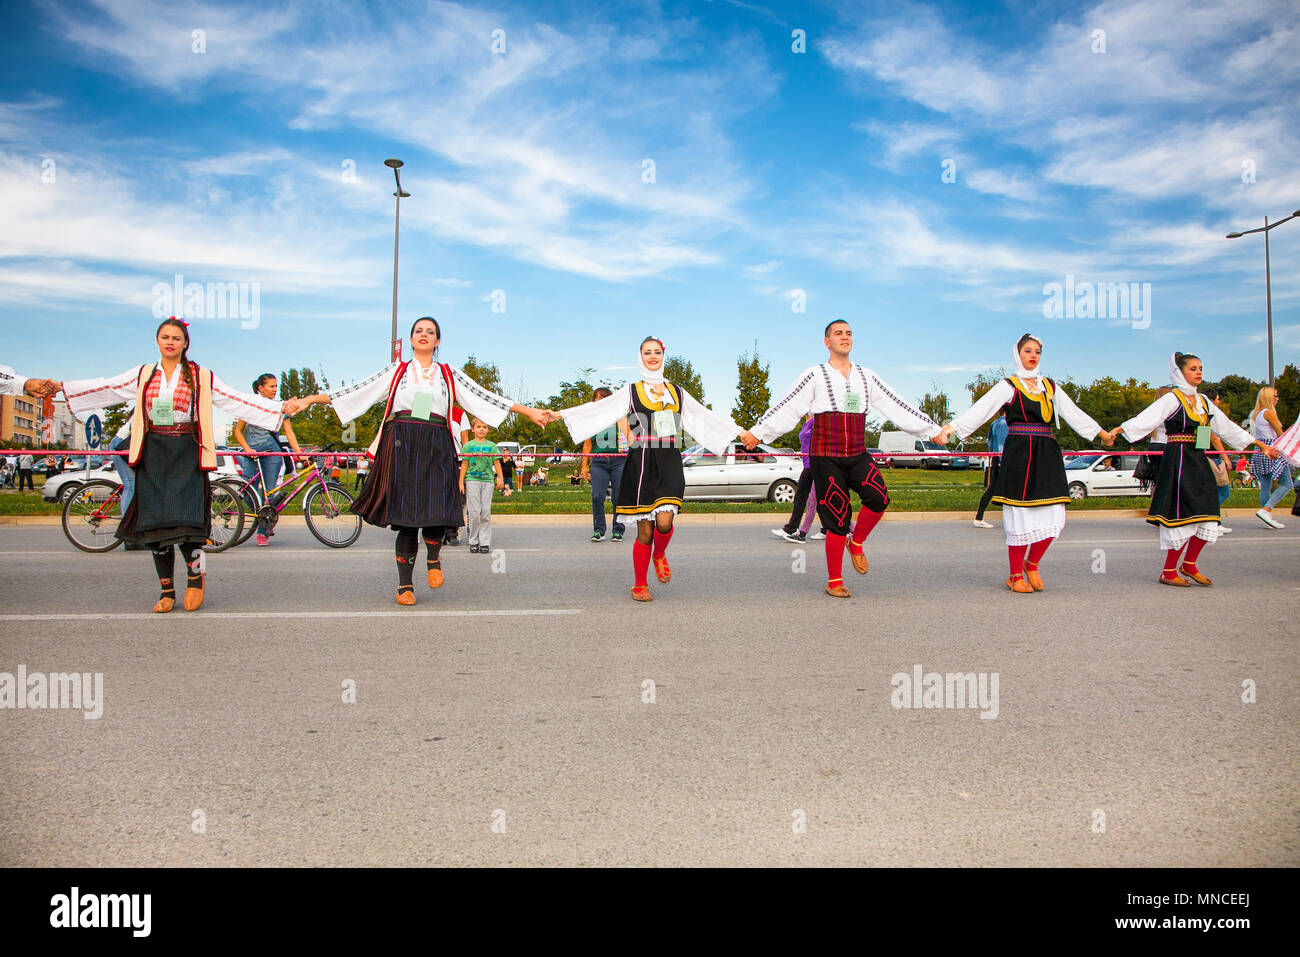 NOVI SAD, SERBIA-OCT 4, 2015: Guinness World Record Largest Folk Dance on Oct 4. 2015 in Novi Sad, Serbia. Over 12.000 participants break the Guinness Stock Photo